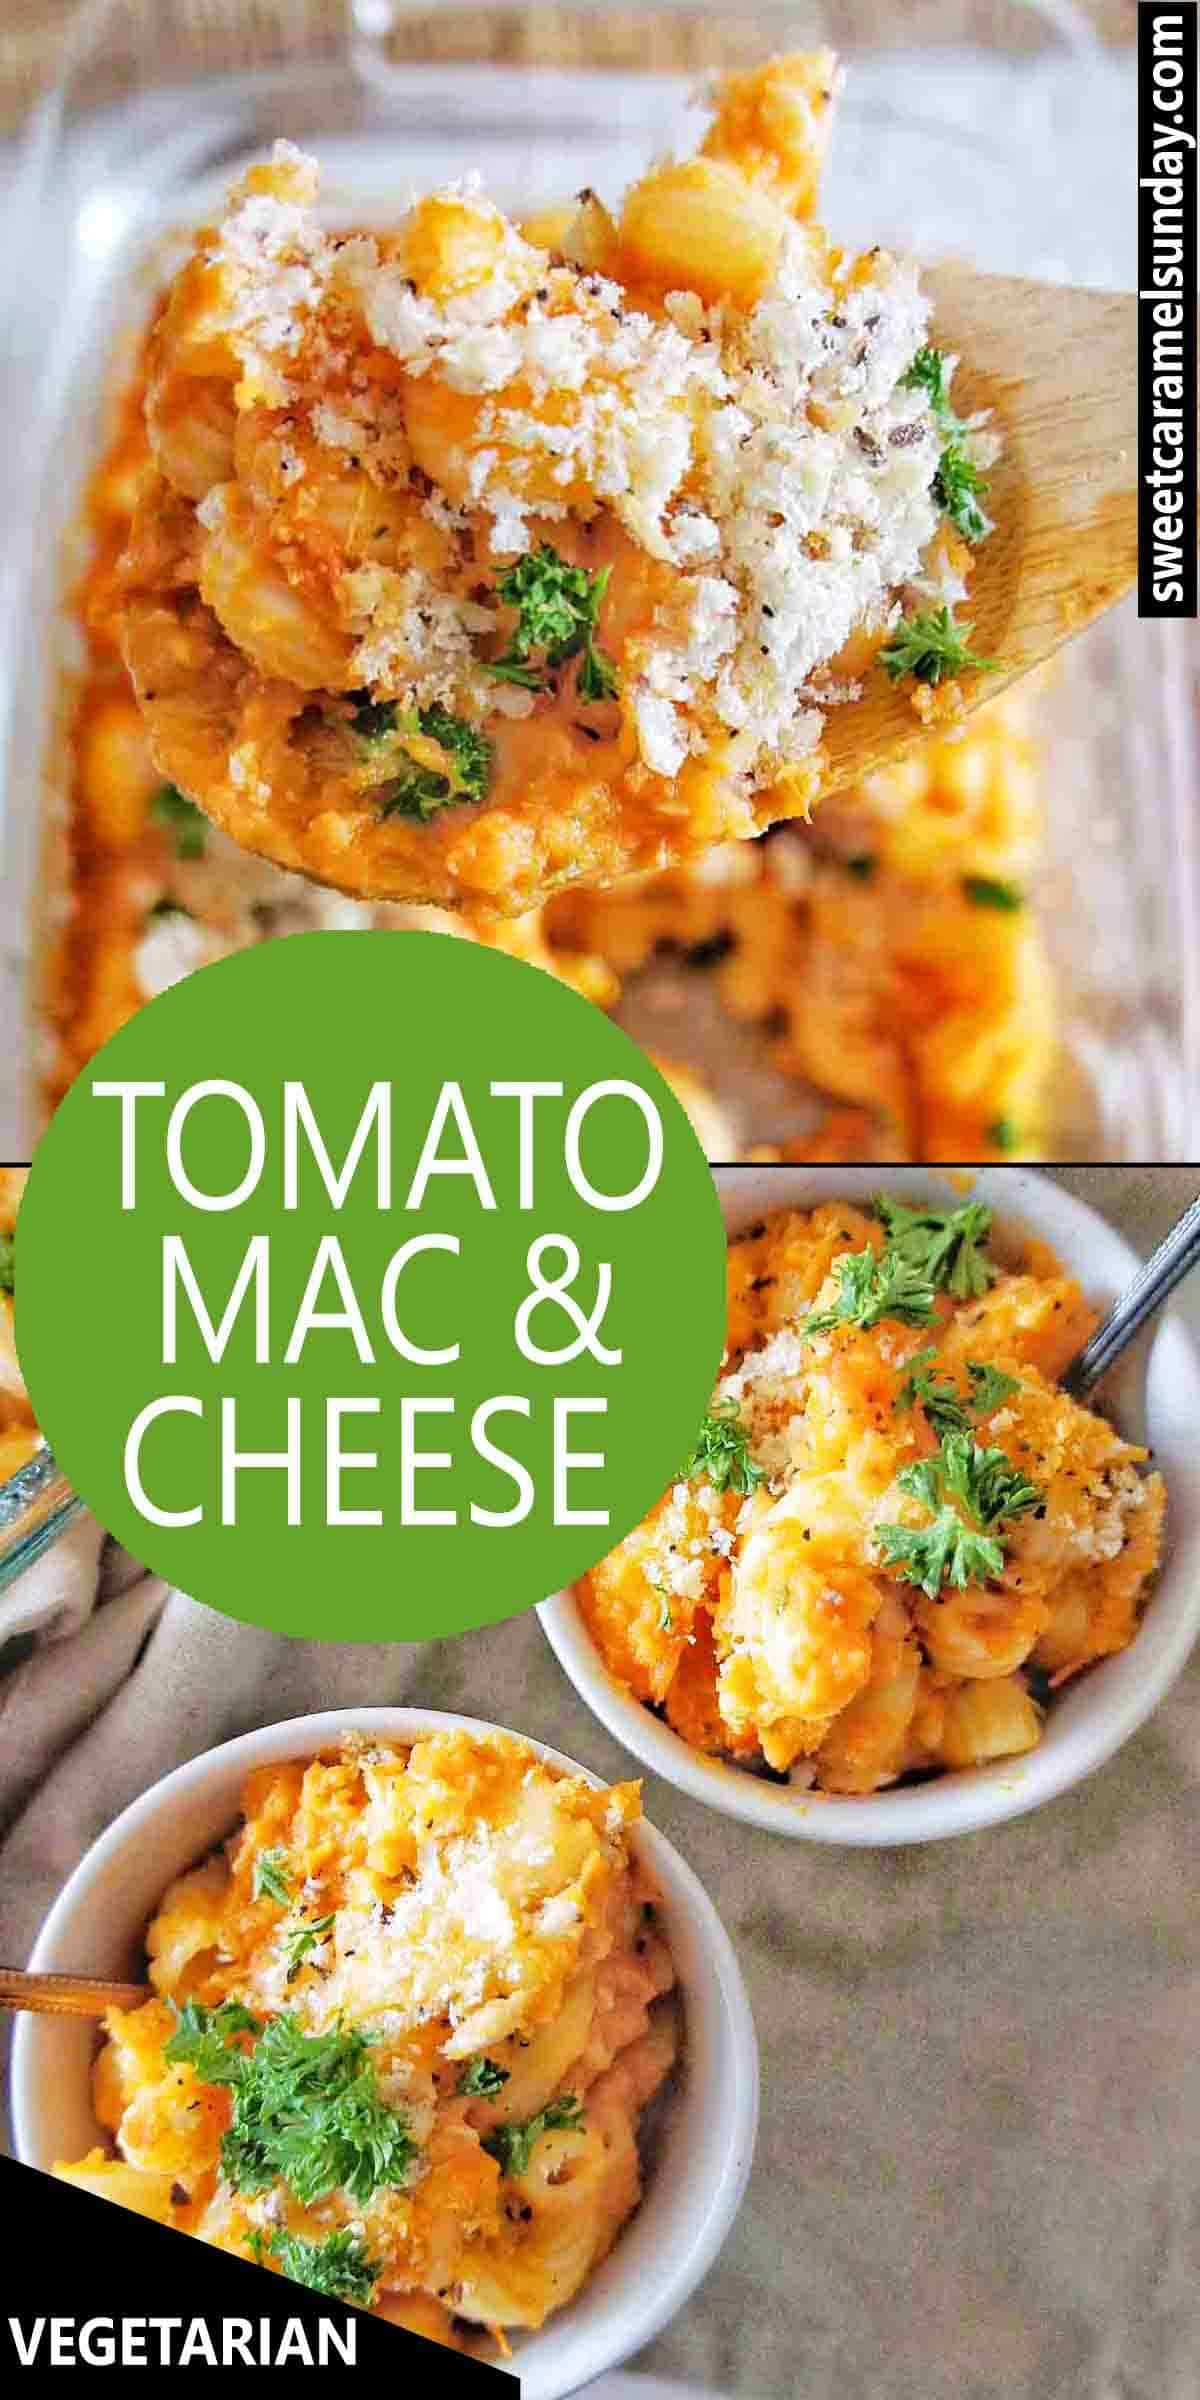 Tomato Mac and Cheese with text overlay